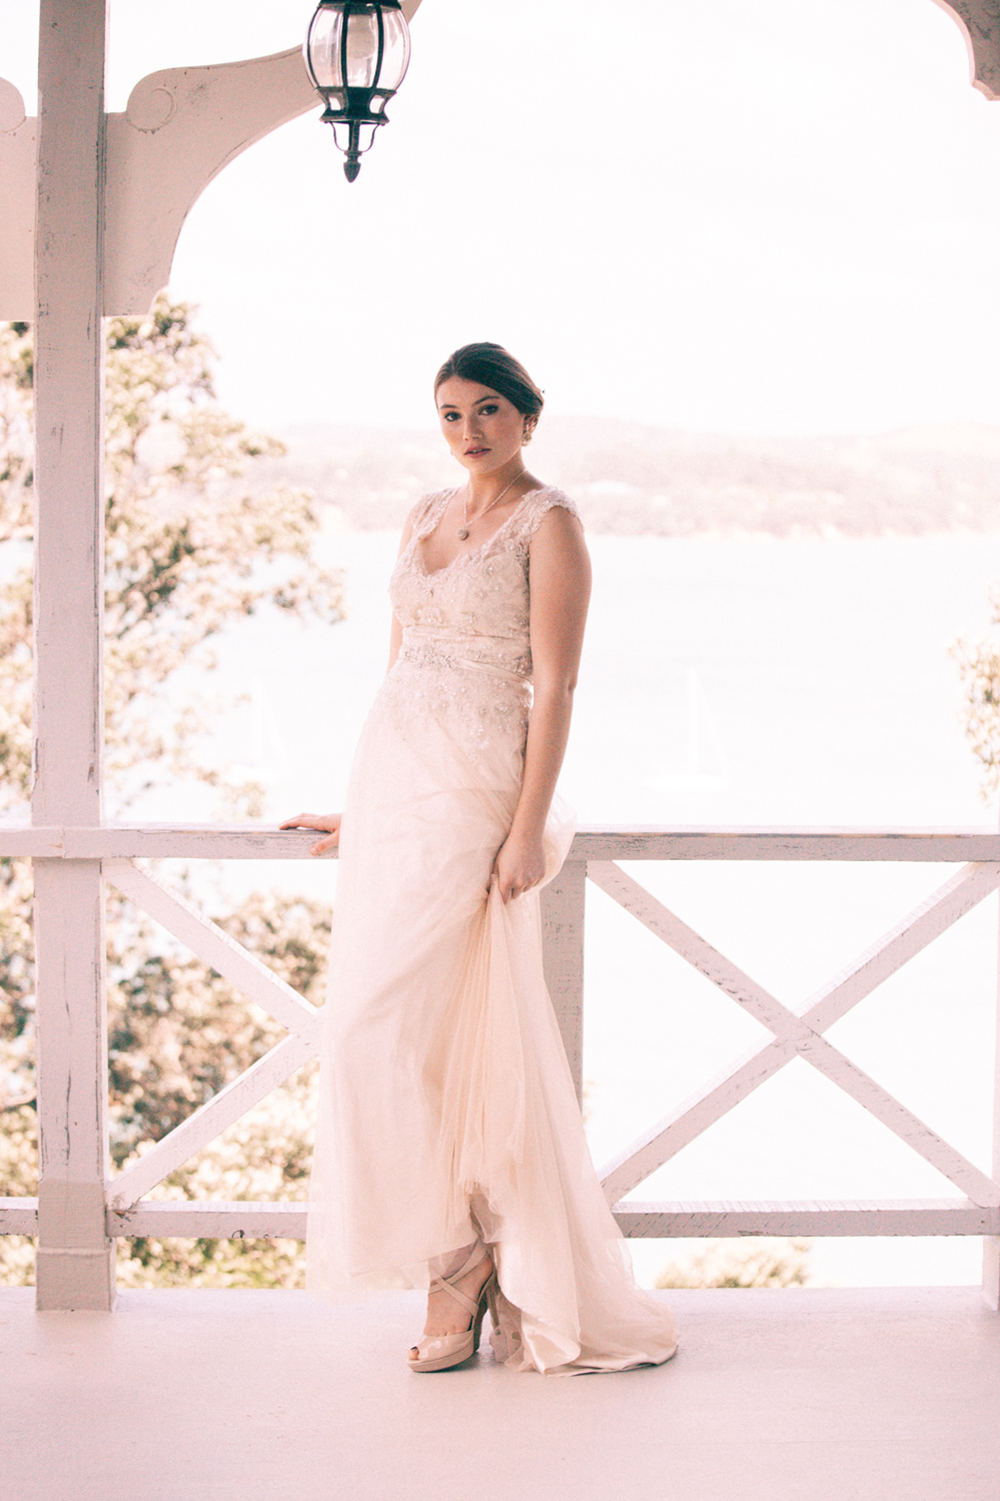 Wedding dress inspiration | Elegant wedding inspiration | Photograhy by Alice Doig | www.borrowedandblue.kiwi